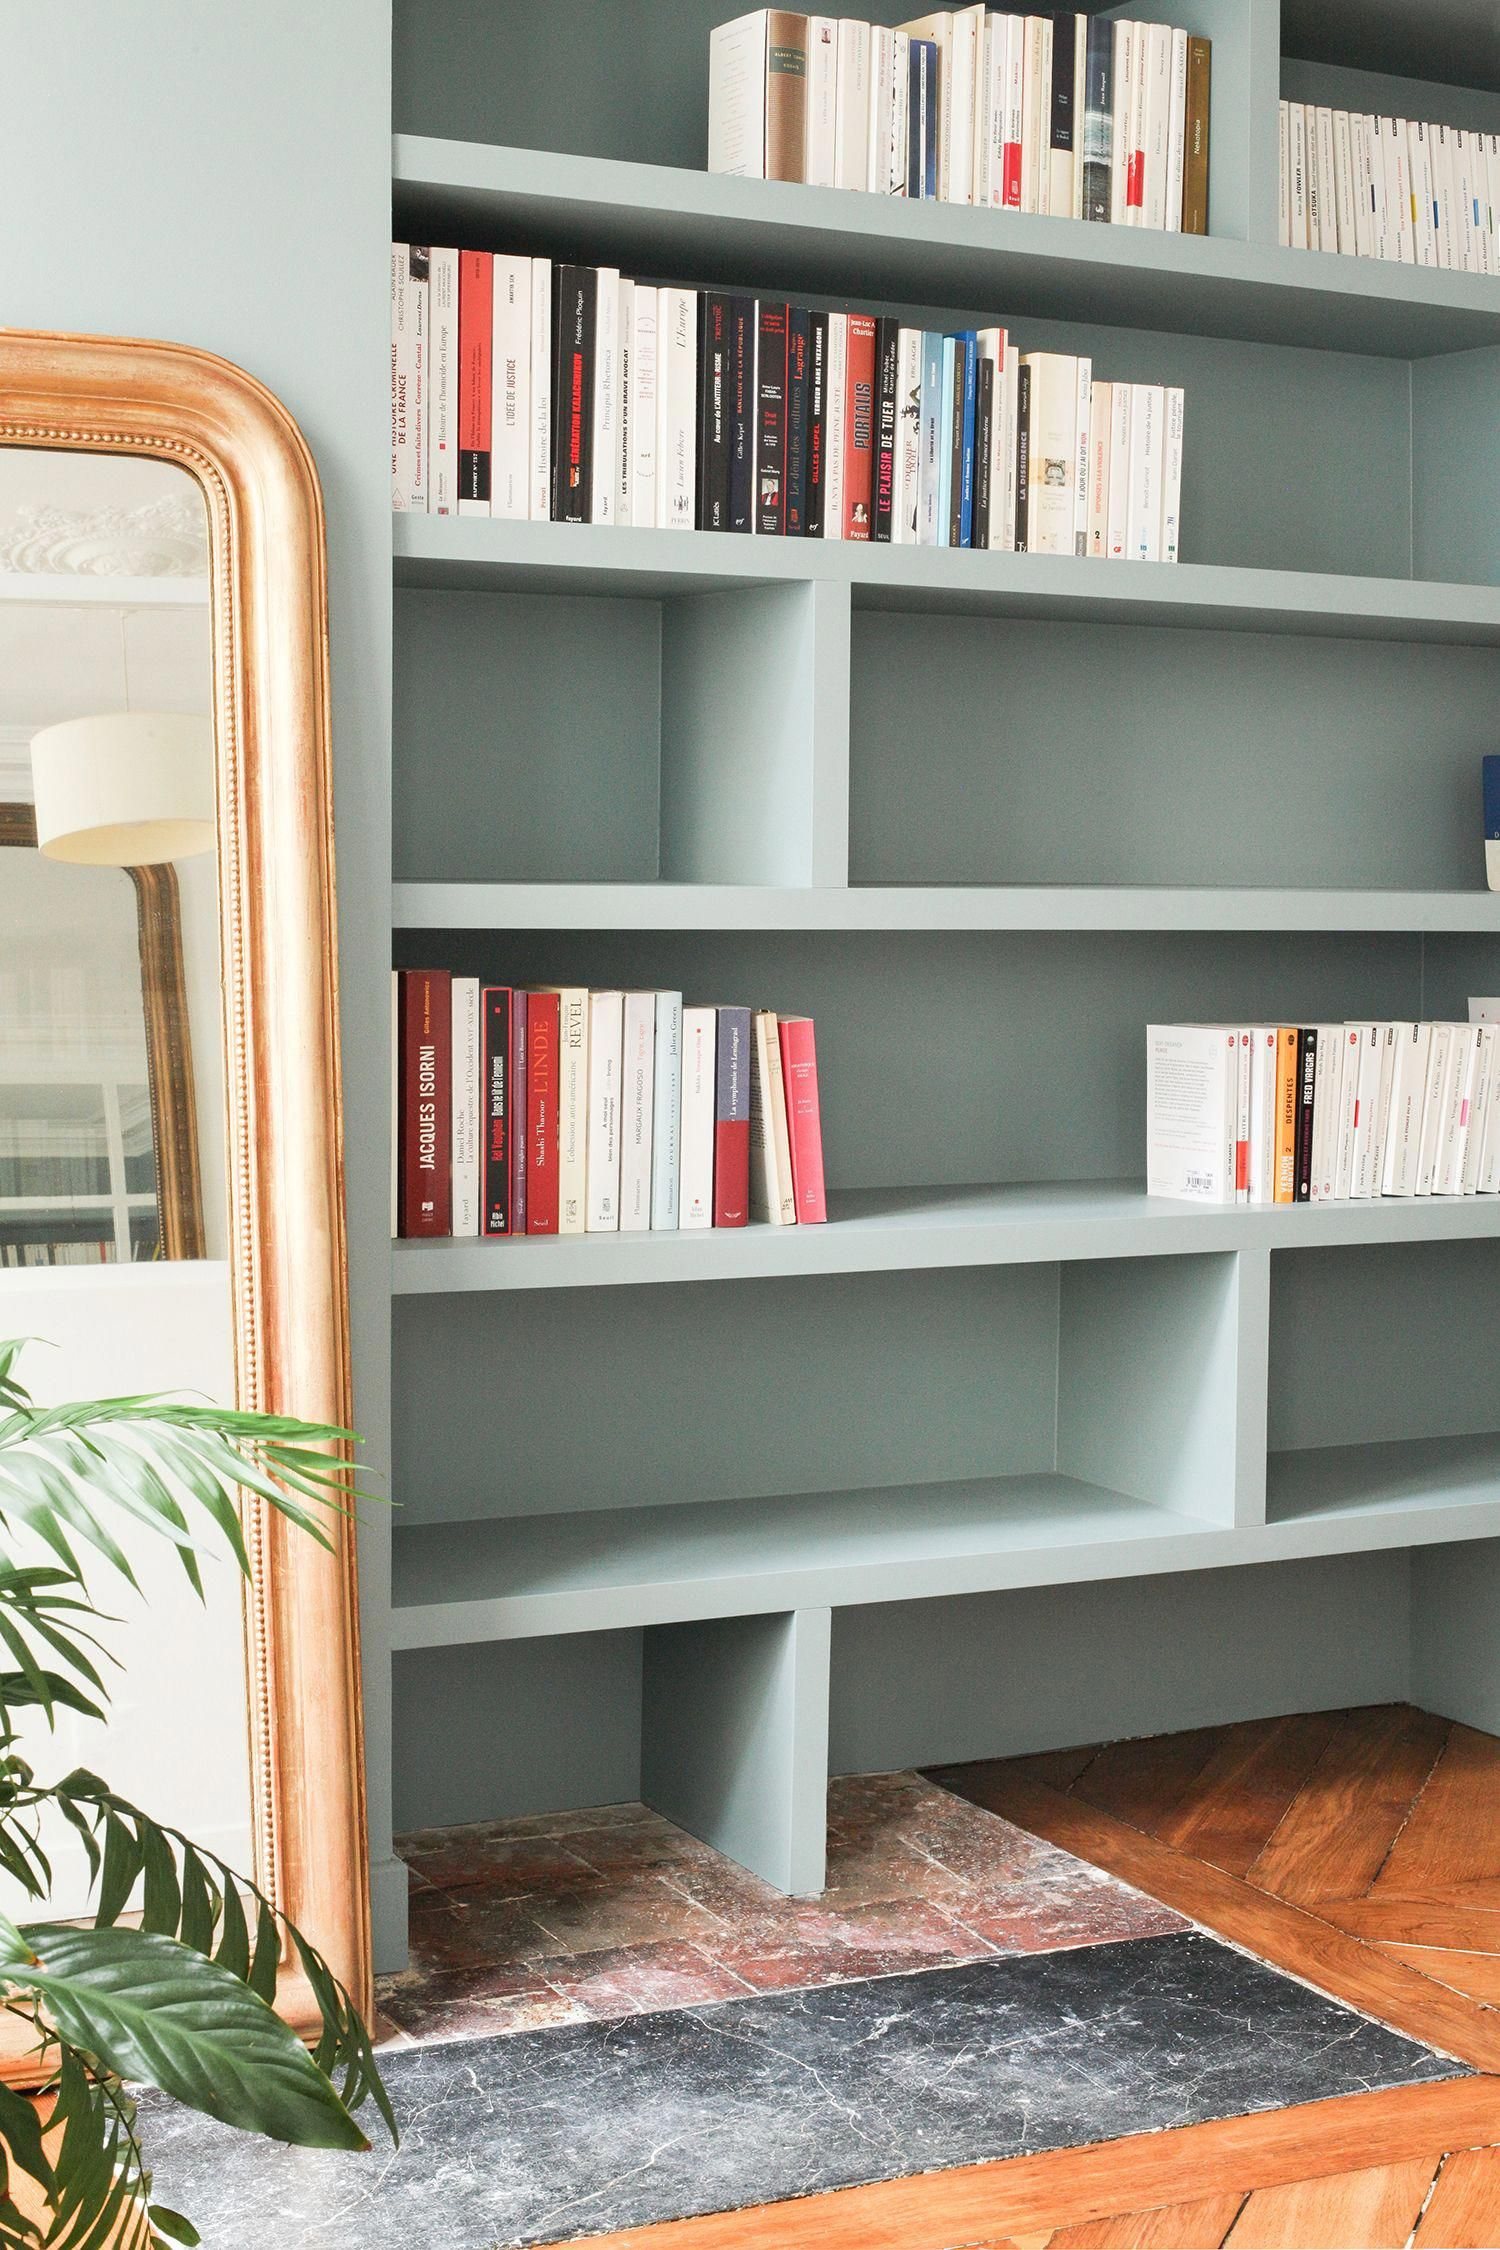 Meuble Lagrange Amenagement Bibliotheque Sur Mesure Sur Mesure Dressing Tv